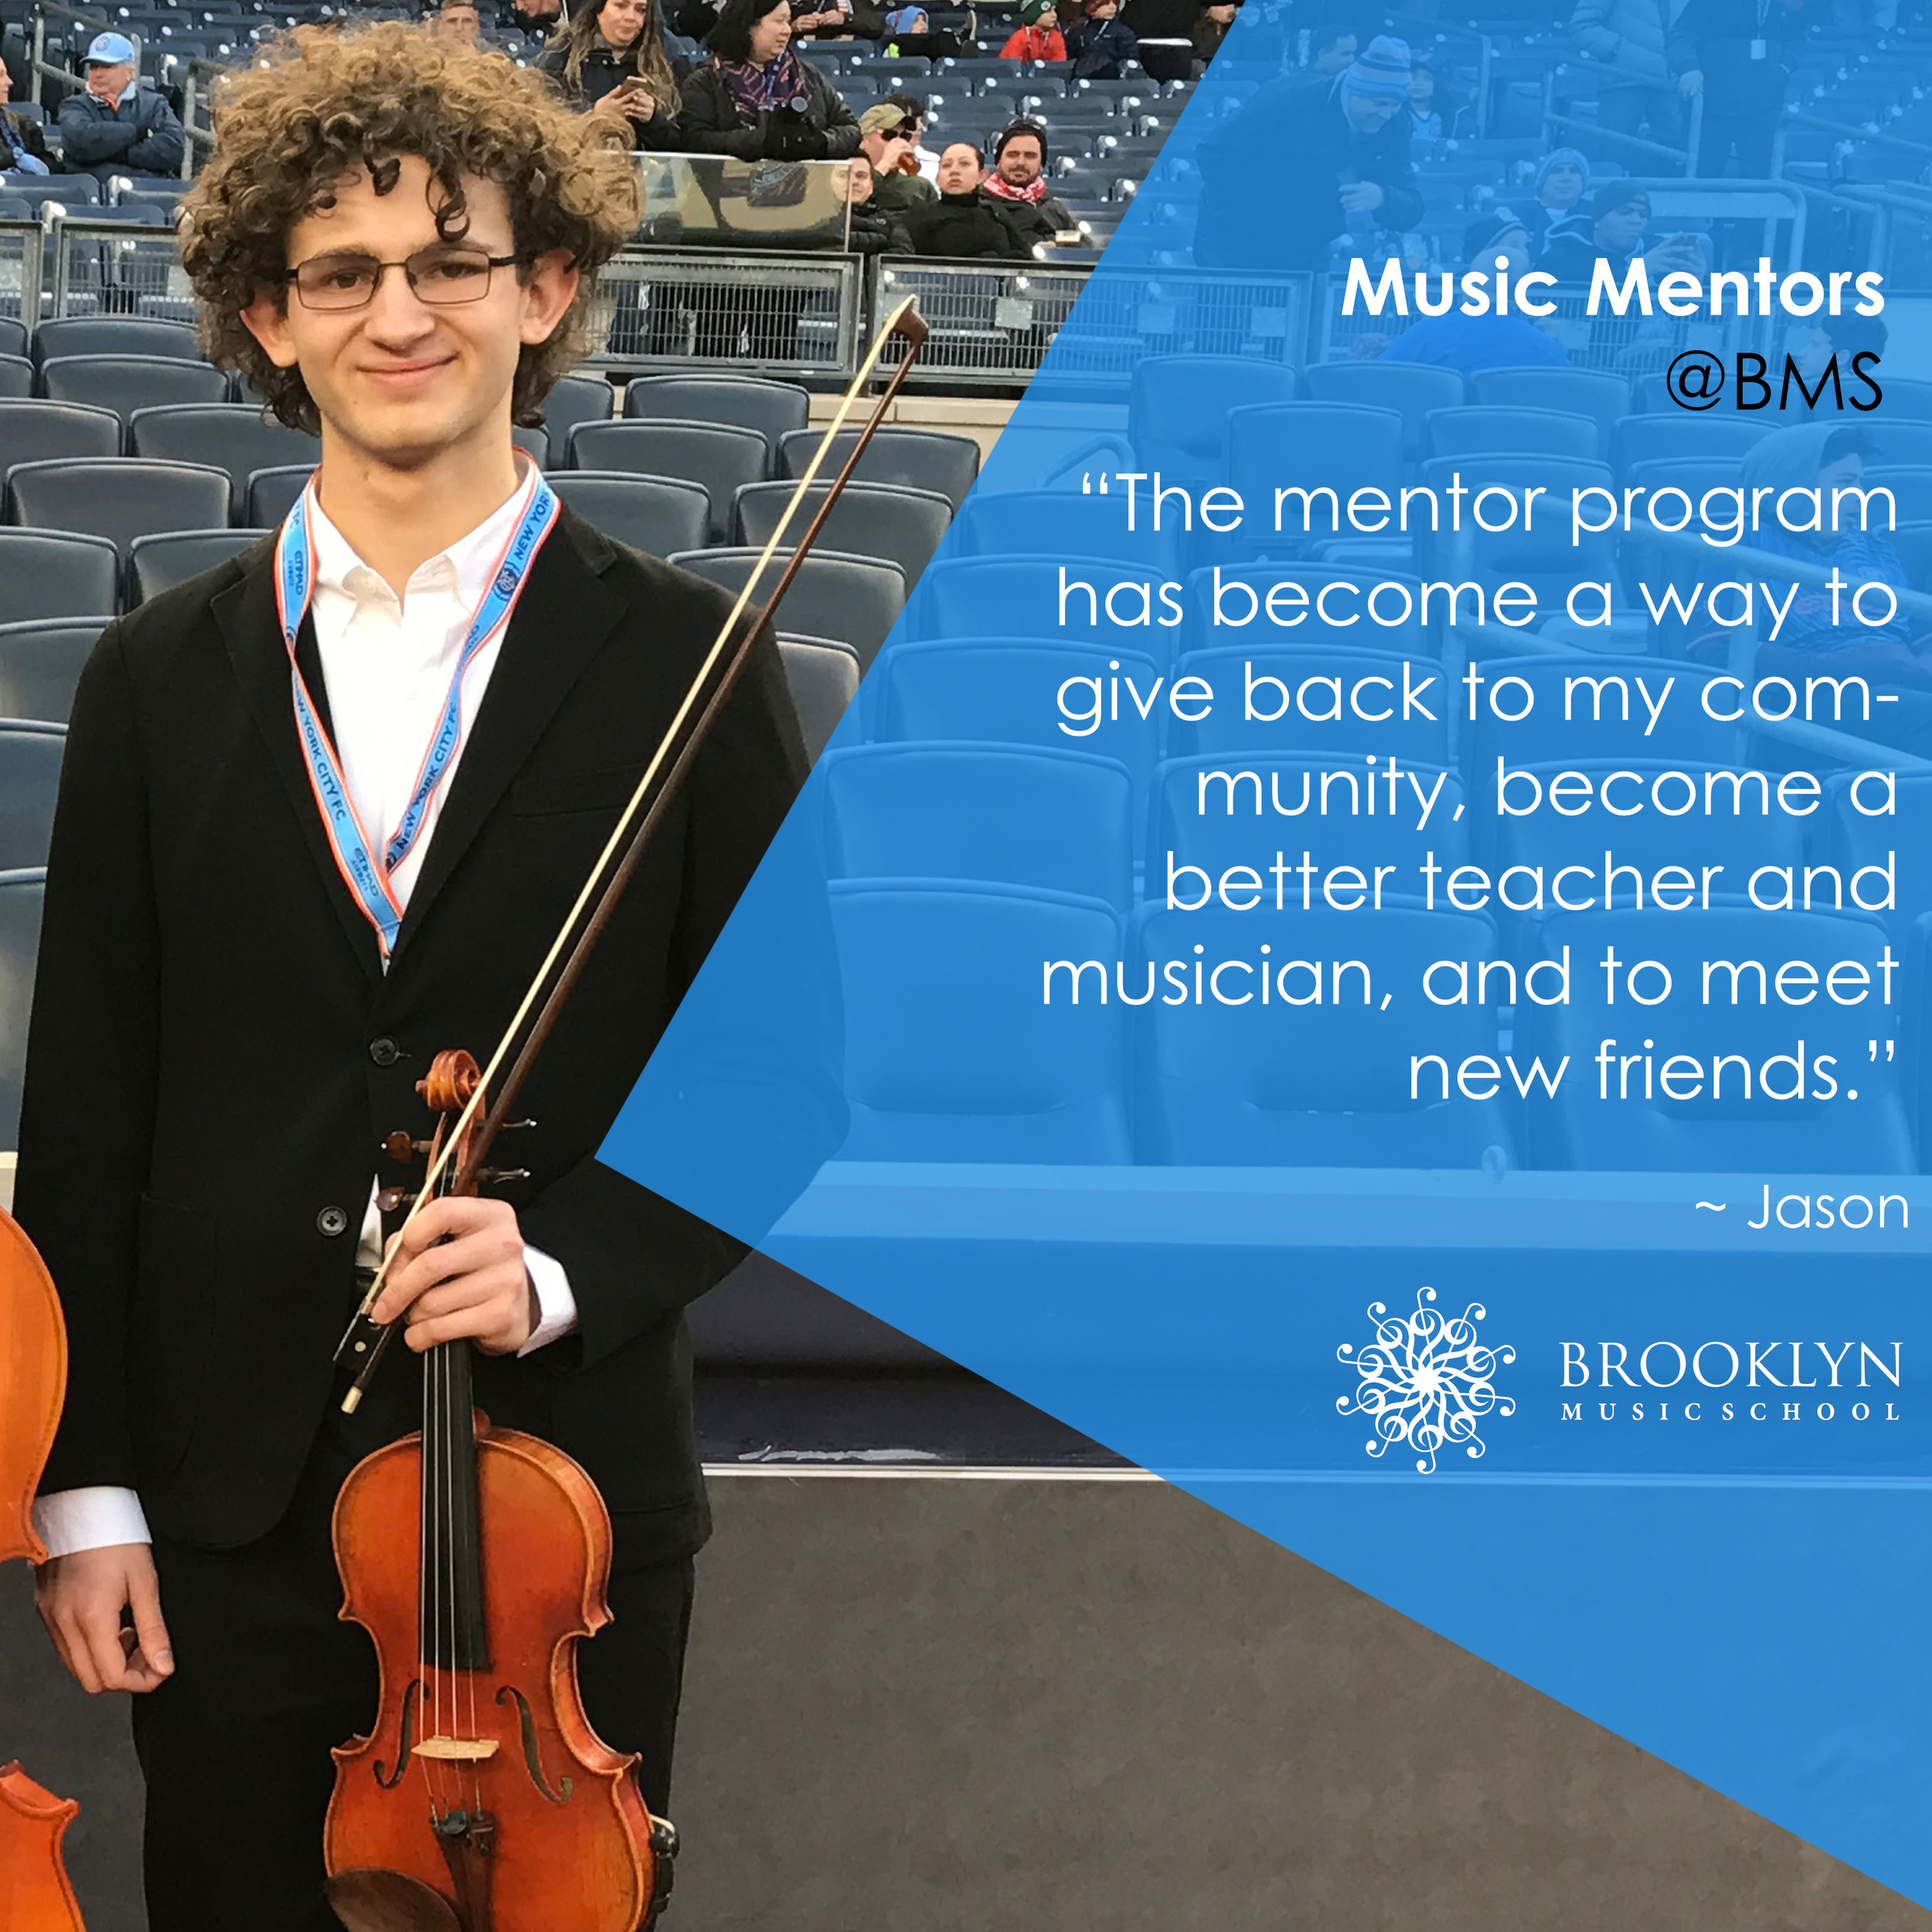 JASON (Violin) - When I first emailed the Brooklyn Music School asking if I could help teach violin, I was just looking for a way to combine my interests of music and education. The mentor program provided so much more. Last year, I worked with 5 and 6 year olds learning to play violin. I didn't expect it to be as fun or educational as it was – the kids were always eager to come to class. Now I'm having even more fun with the child and adult and orchestras. It's an amazing experience that has helped me grow as a musician and as an educator.Another aspect of the mentor program is the working with the other mentors. Each week we have theory class together with Rafael. The music theory class at my school was boring, confusing, and I didn't learn anything. This class is the complete opposite. Each week we learn something new, and we always have a good laugh at the end. All the other mentors are incredibly talented and kind, and have become some of my best friends. In the year since I came to the Brooklyn Music School for the first time, the mentor program has become a way to give back to my community, become a better teacher and musician, and to meet new friends.